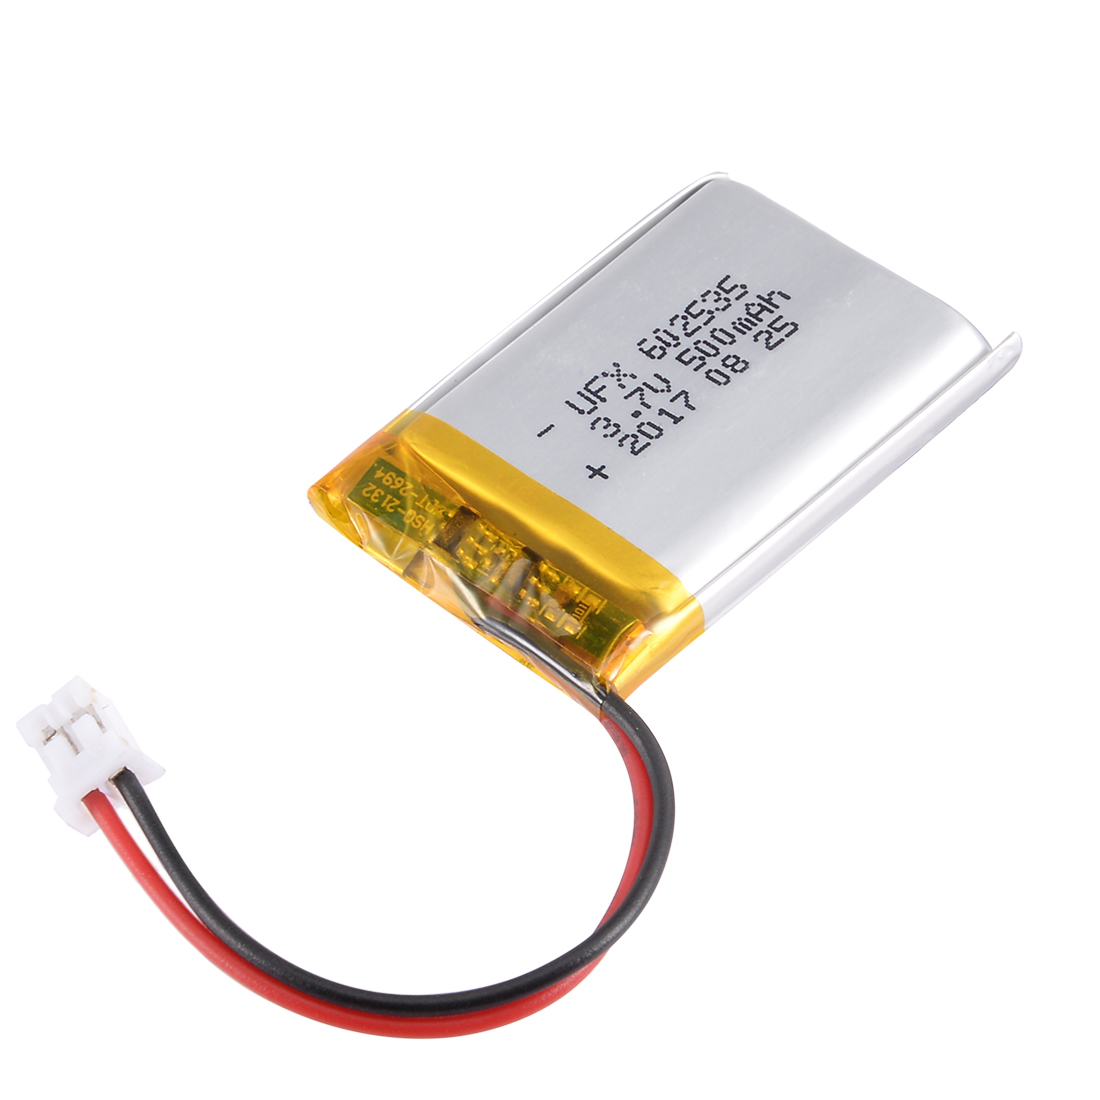 Unique Bargains Power Supply DC 3.7V 500mAh 602535 Rechargeable Lithium Polymer Li-Po Battery